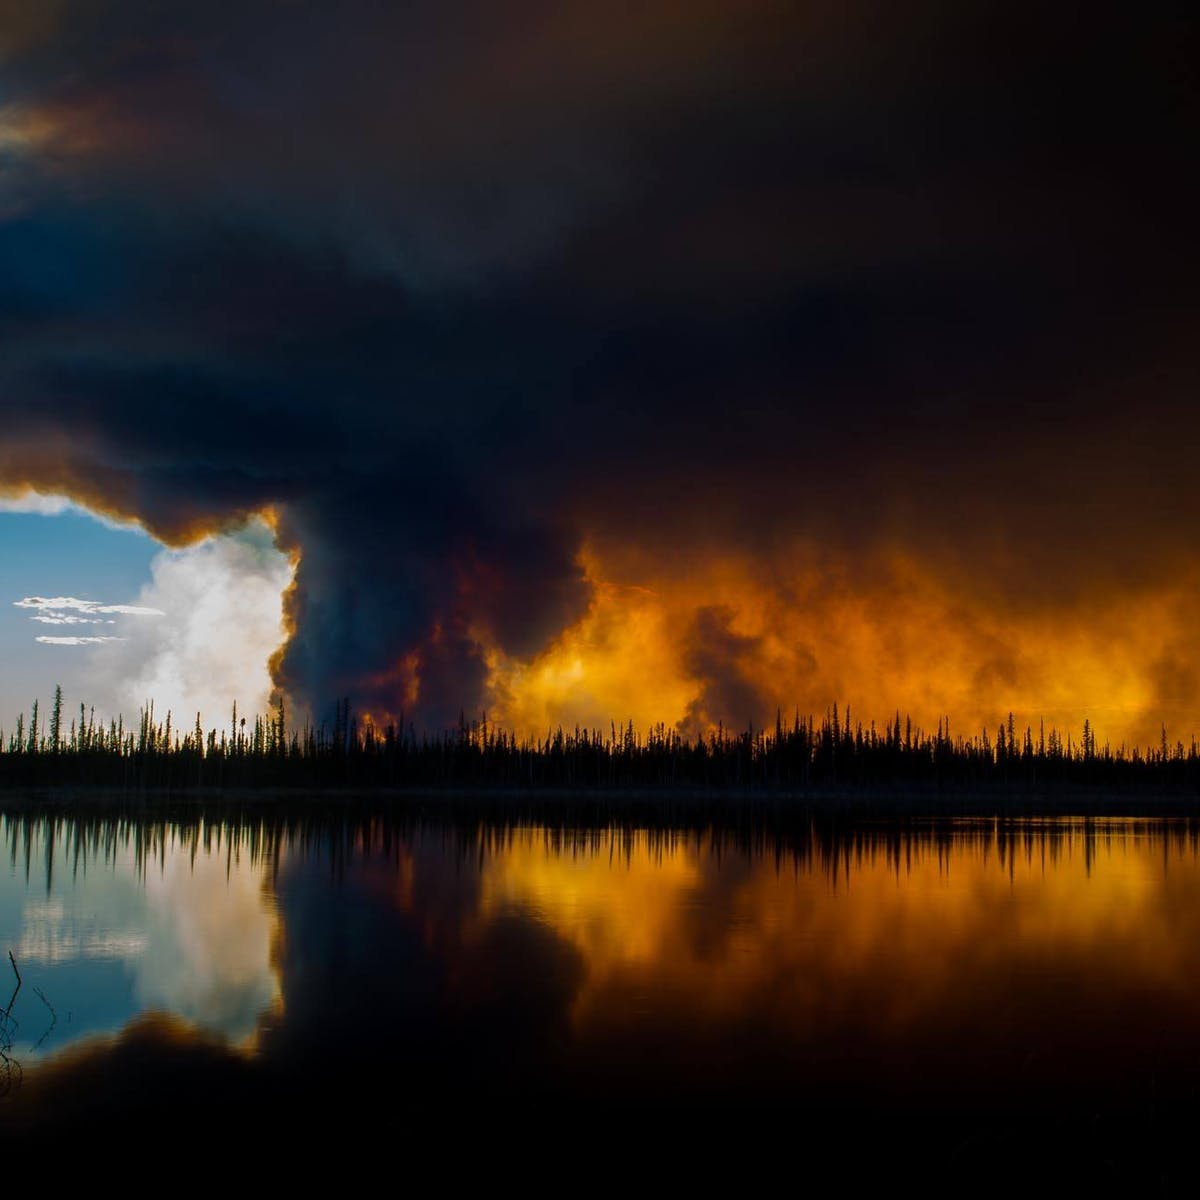 Wildfires in West have gotten bigger, more frequent and